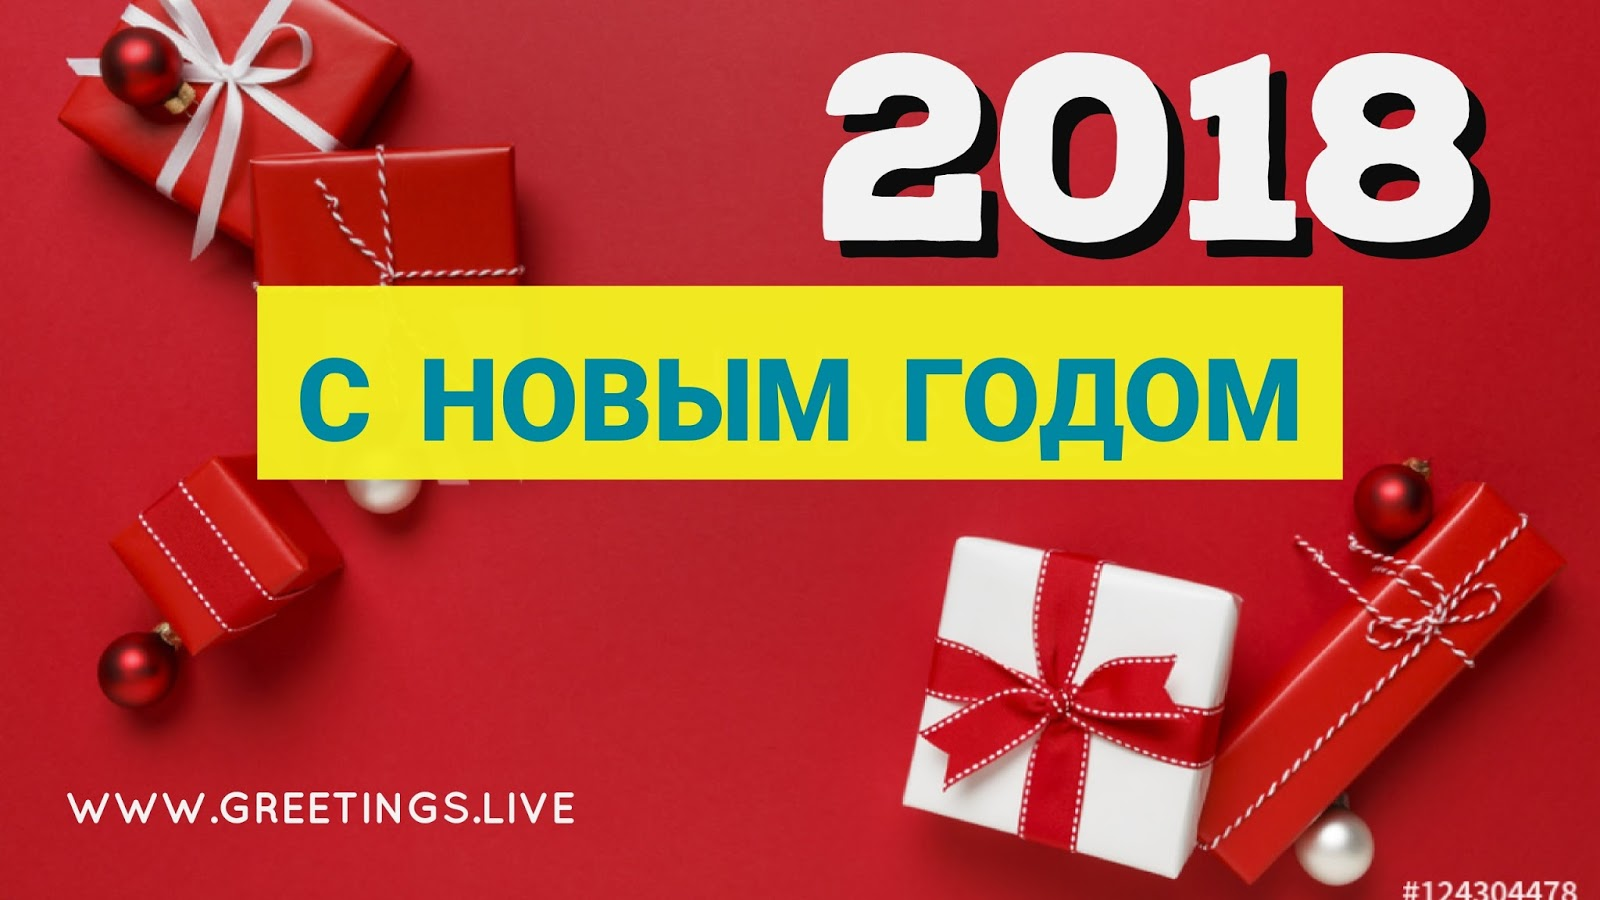 Greetingsve hd images love smile birthday wishes free download red colour russian greeting new year 2018 kristyandbryce Image collections